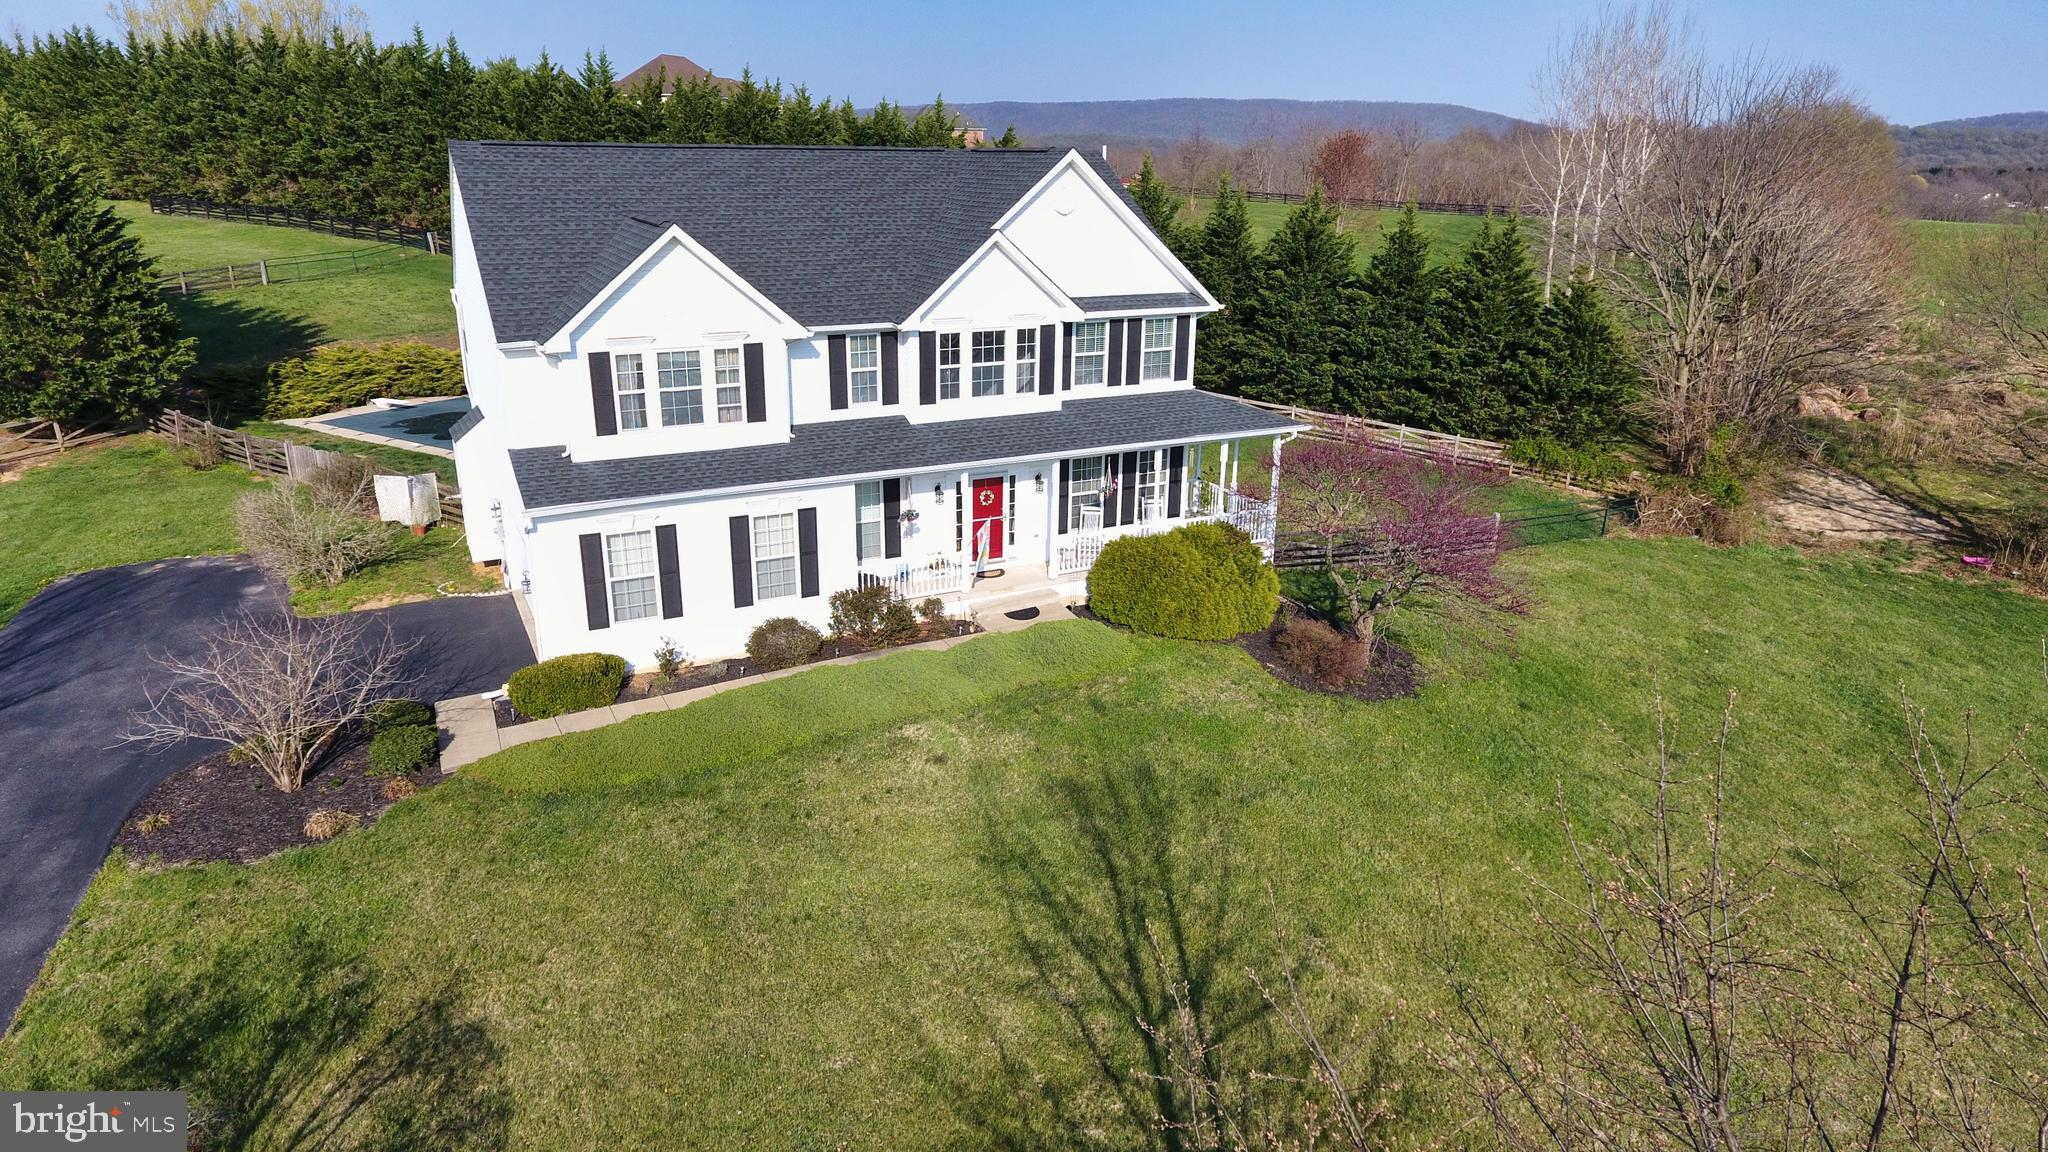 61 Tranquility, Harpers Ferry, WV, 25425